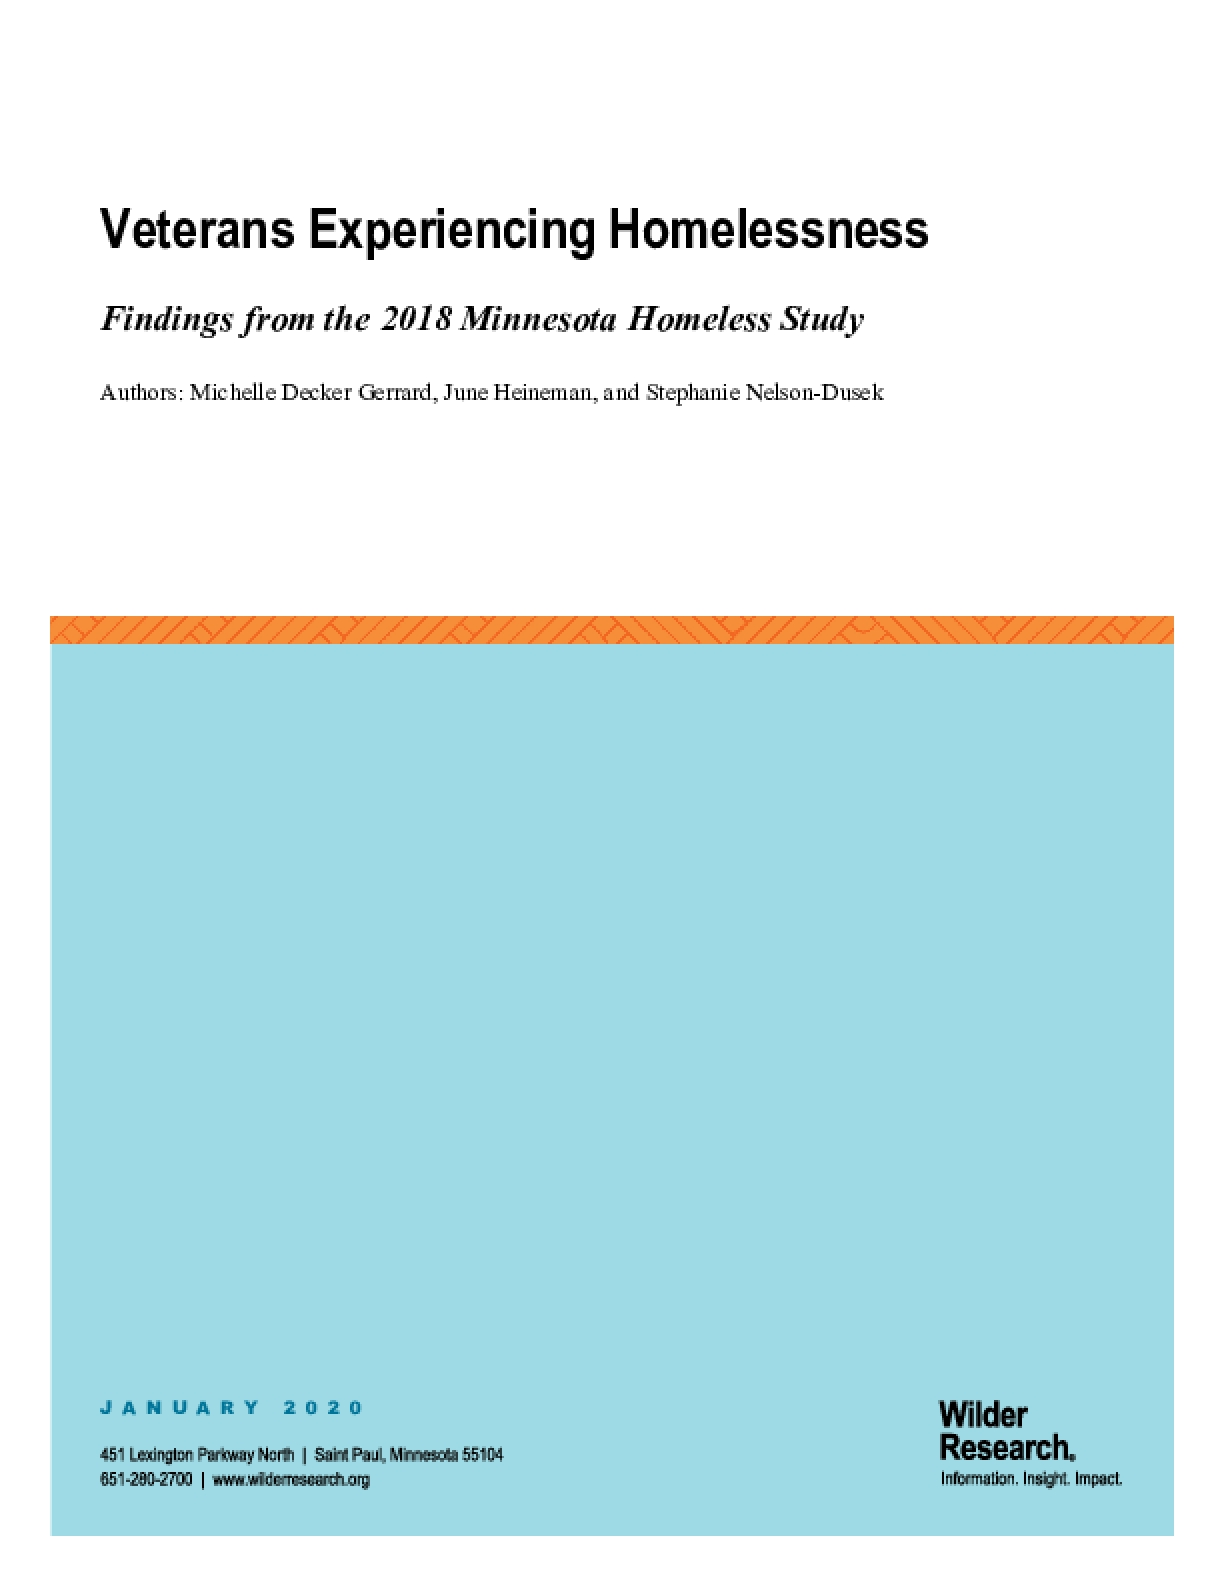 Veterans Experiencing Homelessness: Findings rom the 2018 Minnesota Homeless Study